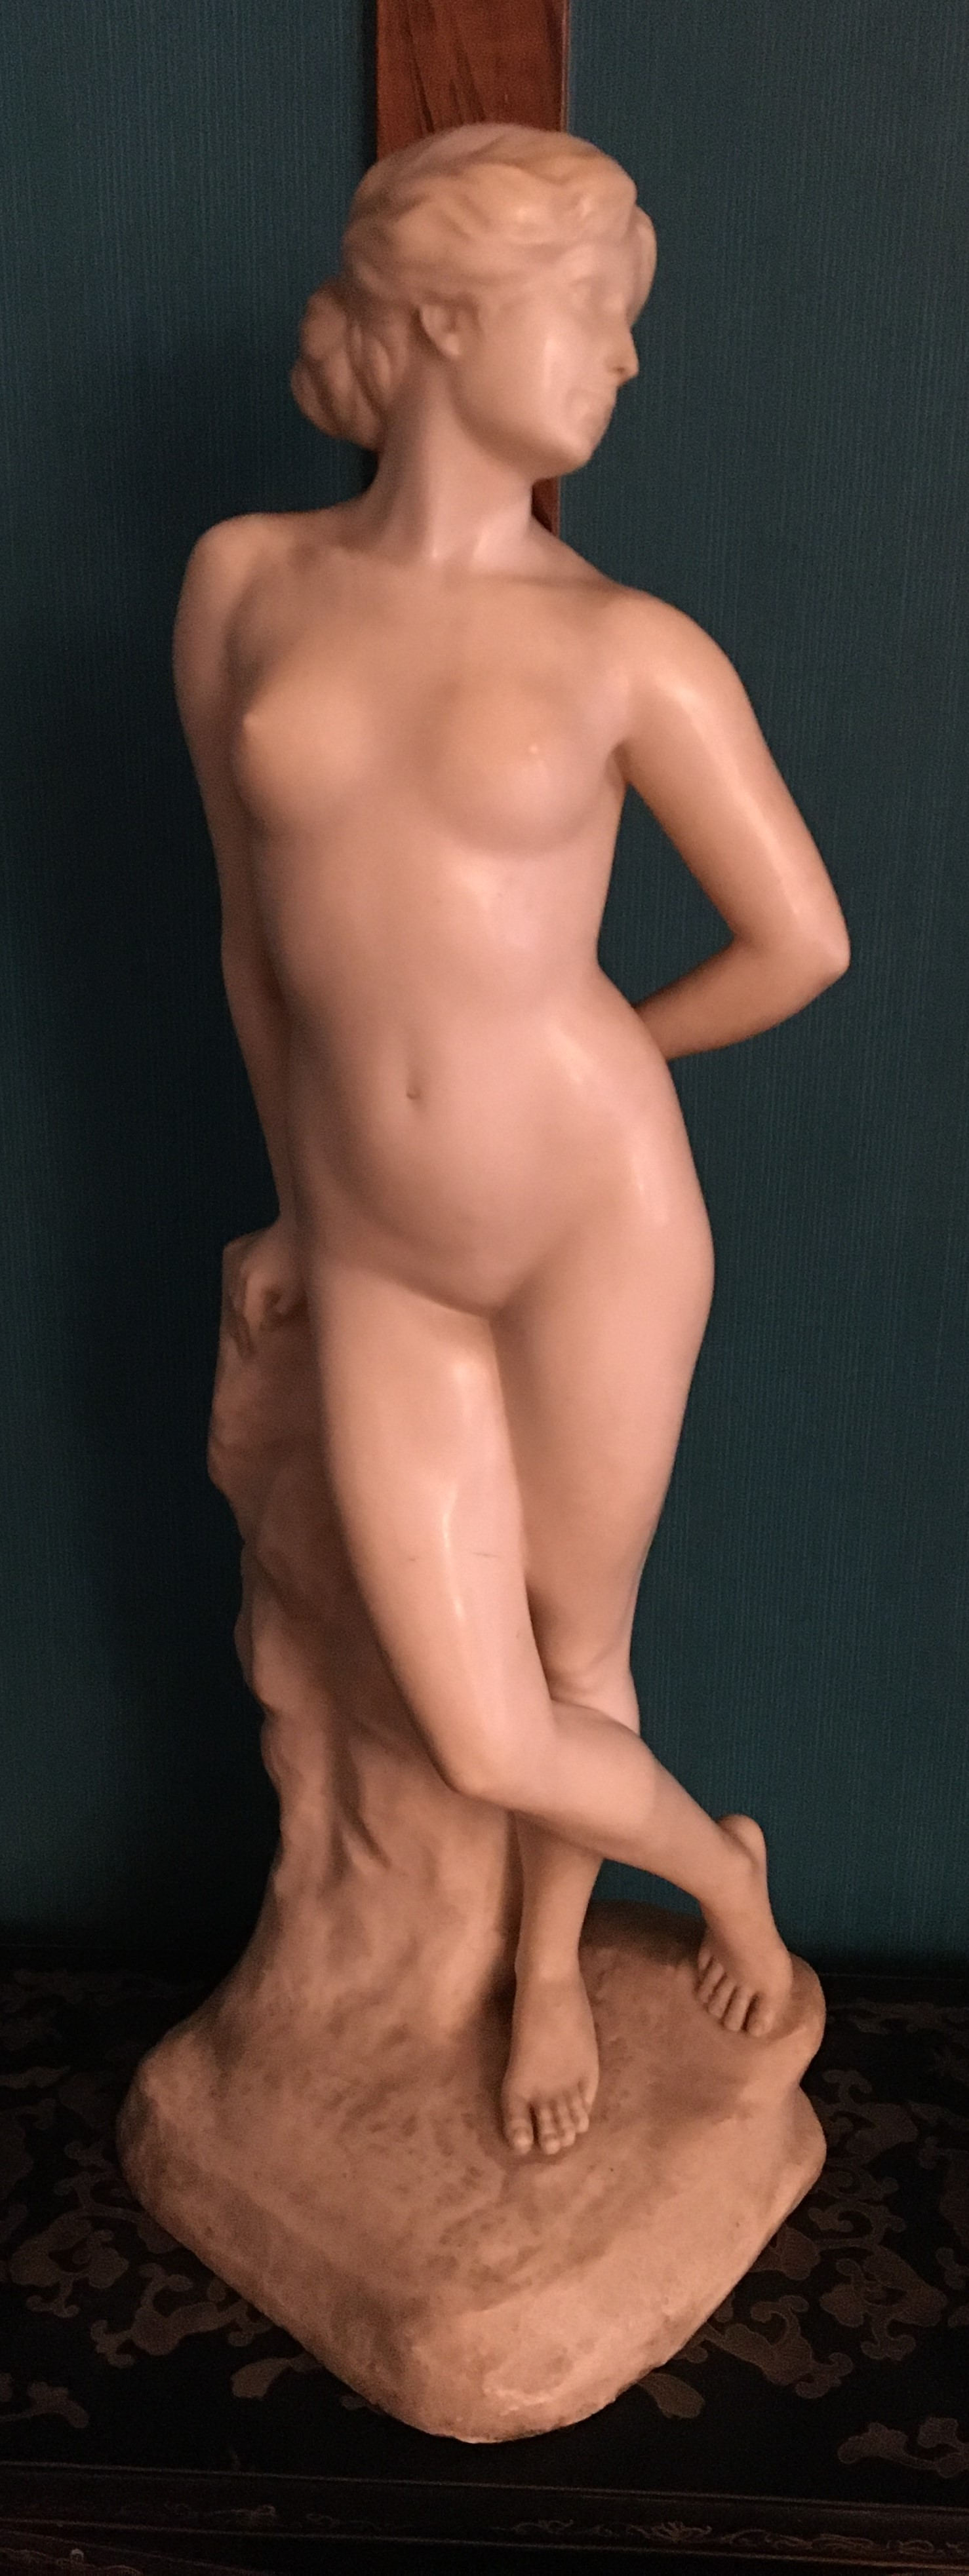 Ernst Seger Jugendschil Alabaster nude of a woman